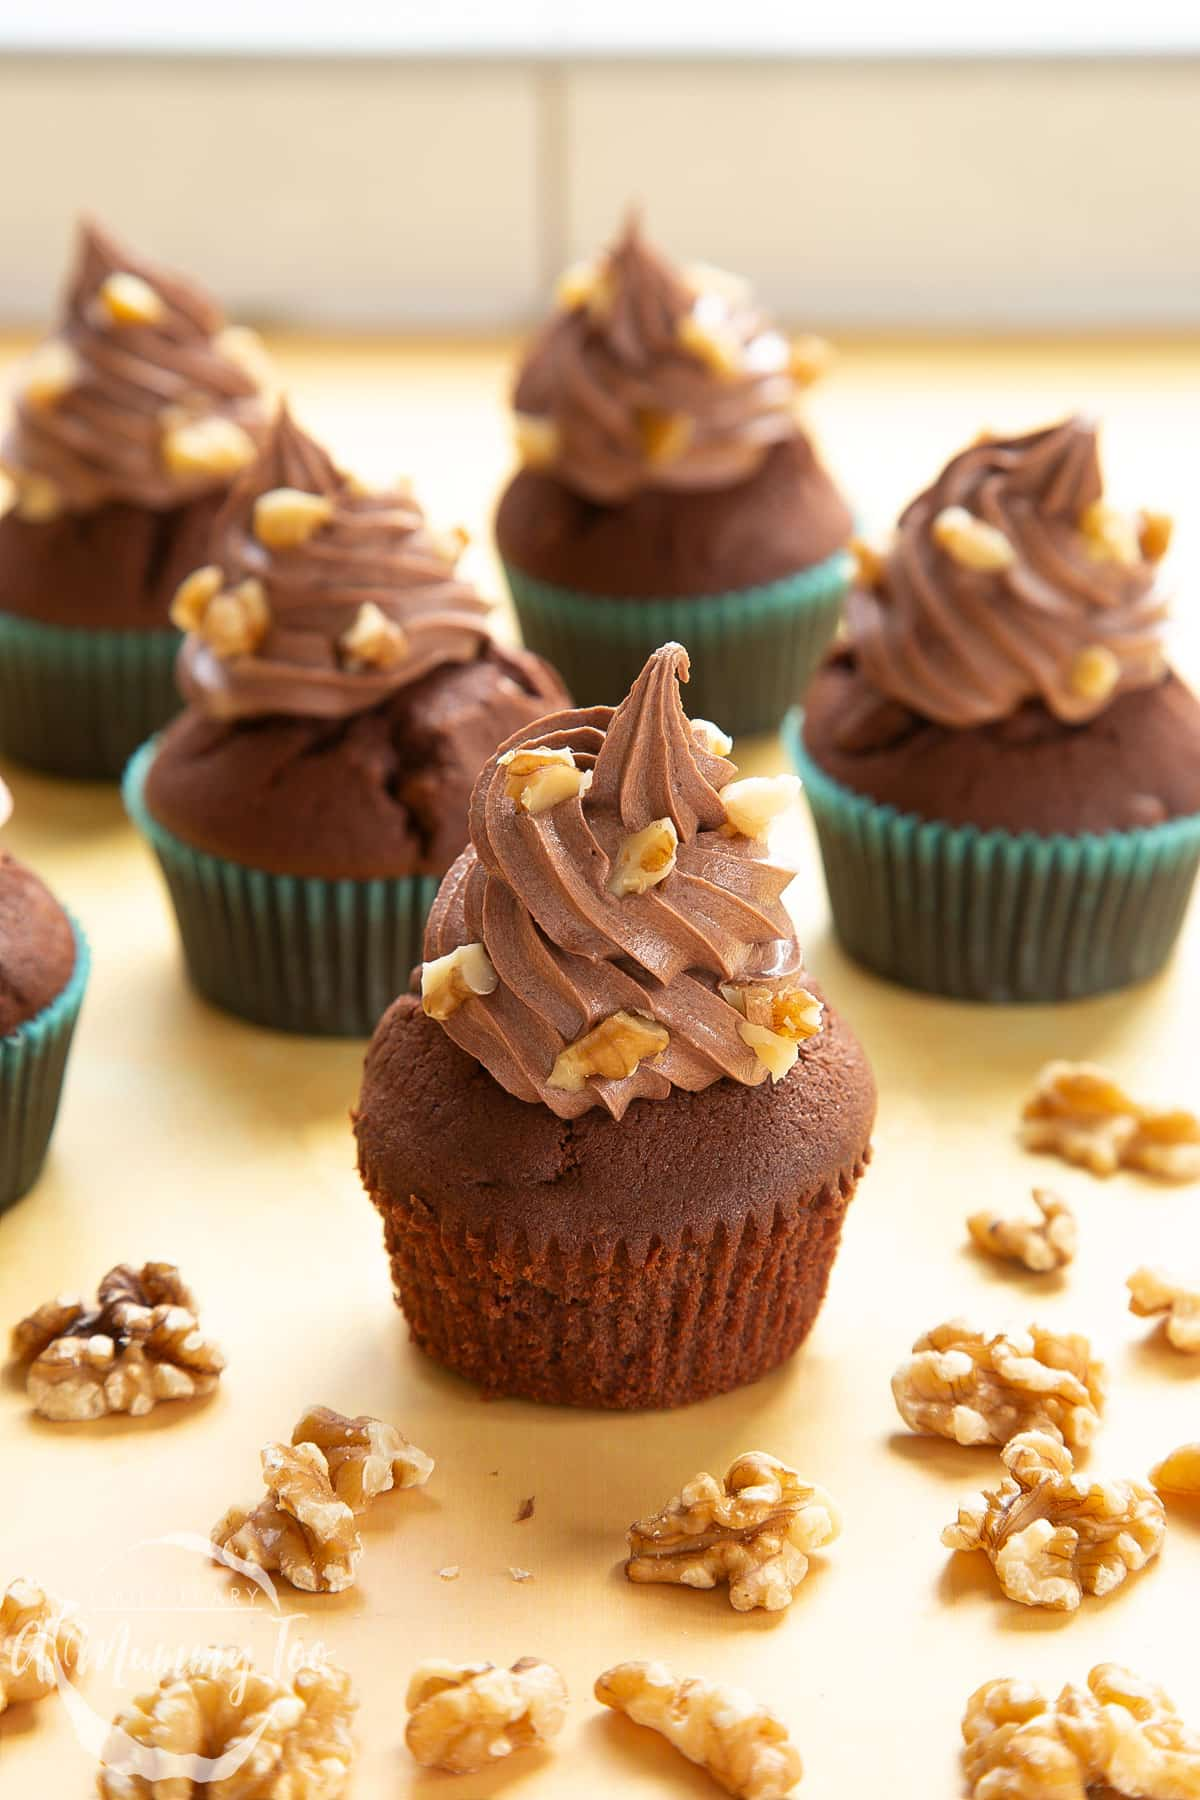 Chocolate walnut cupcakes decorated with creamy chocolate frosting. Walnuts are scattered around the cupcakes. The cupcake in the fore has been unwrapped from its case.